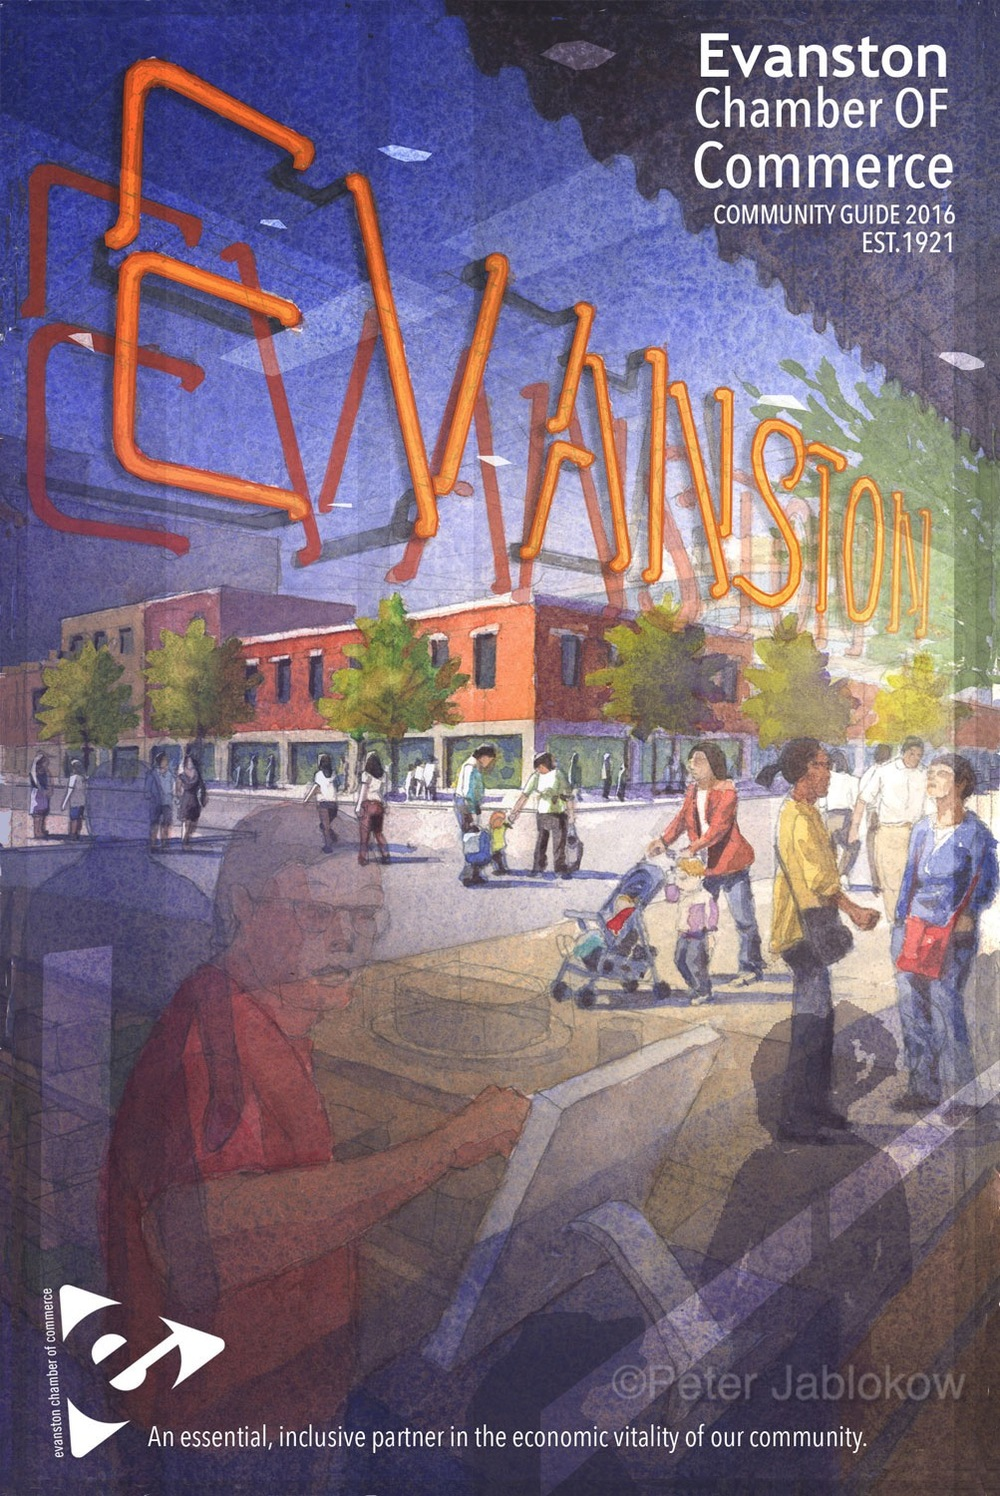 Evanston Chamber of Commerce Community Guide Cover